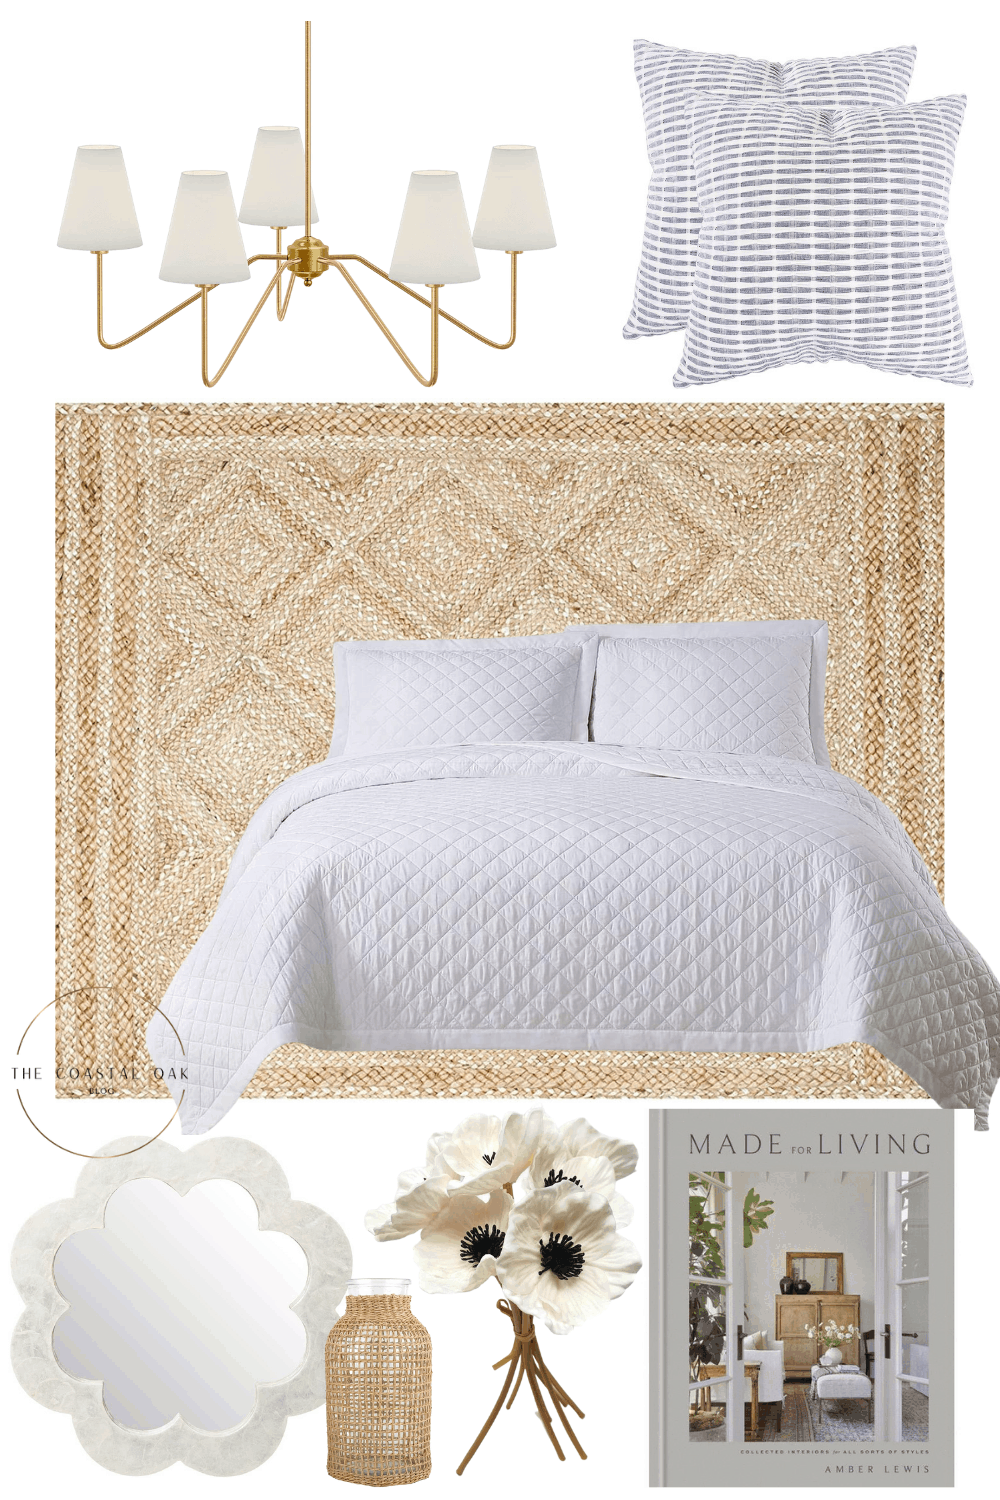 Coastal home decor round-up with Serena & Lily looks for less.